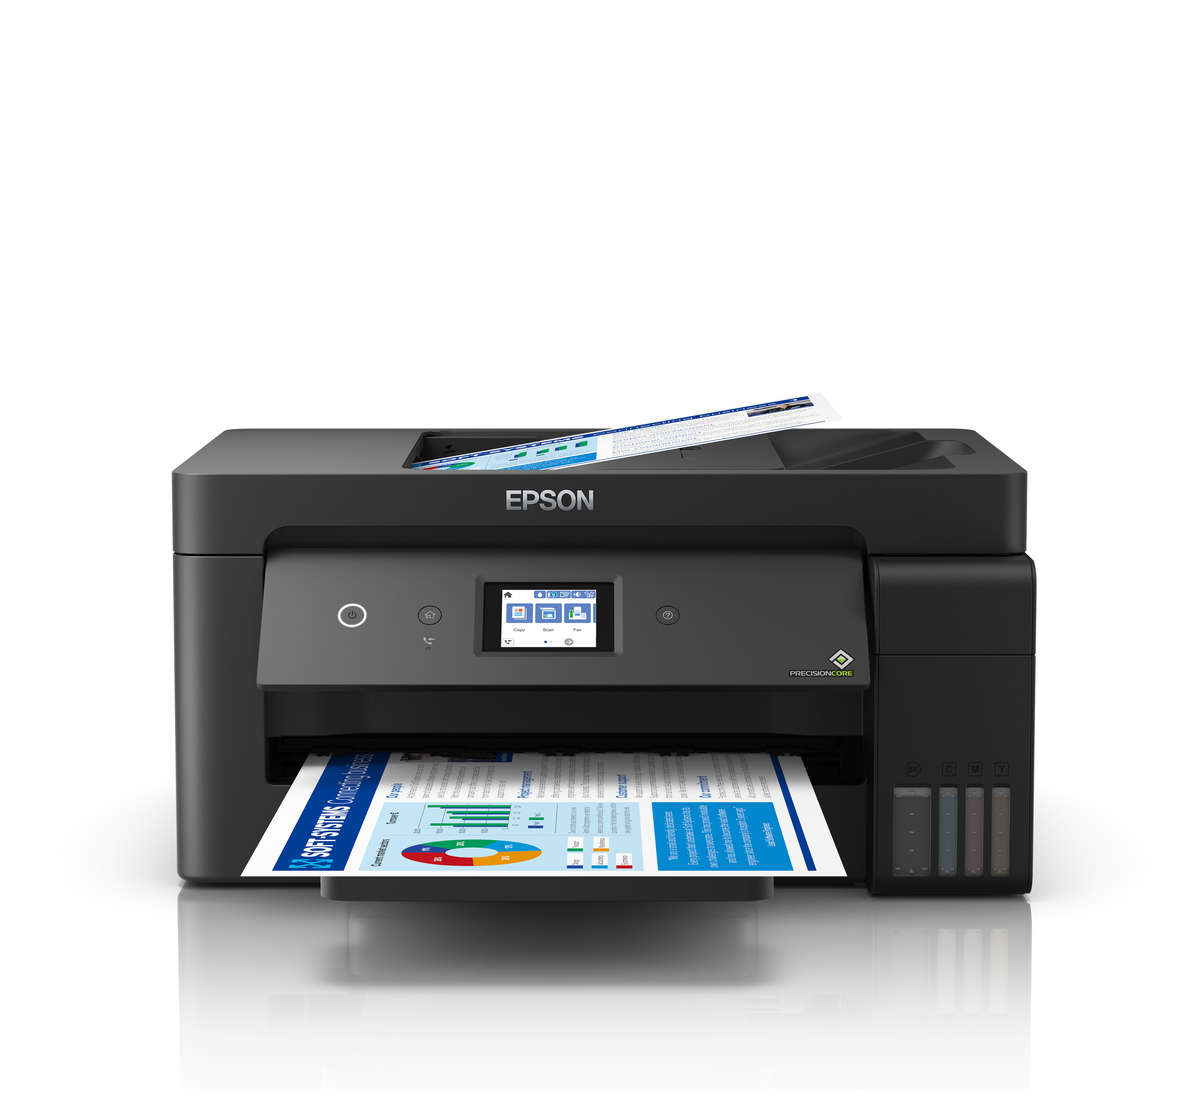 Epson EcoTank L14150 A4+ Wi-Fi Duplex Wide-Format All-in-One Ink Tank Printer